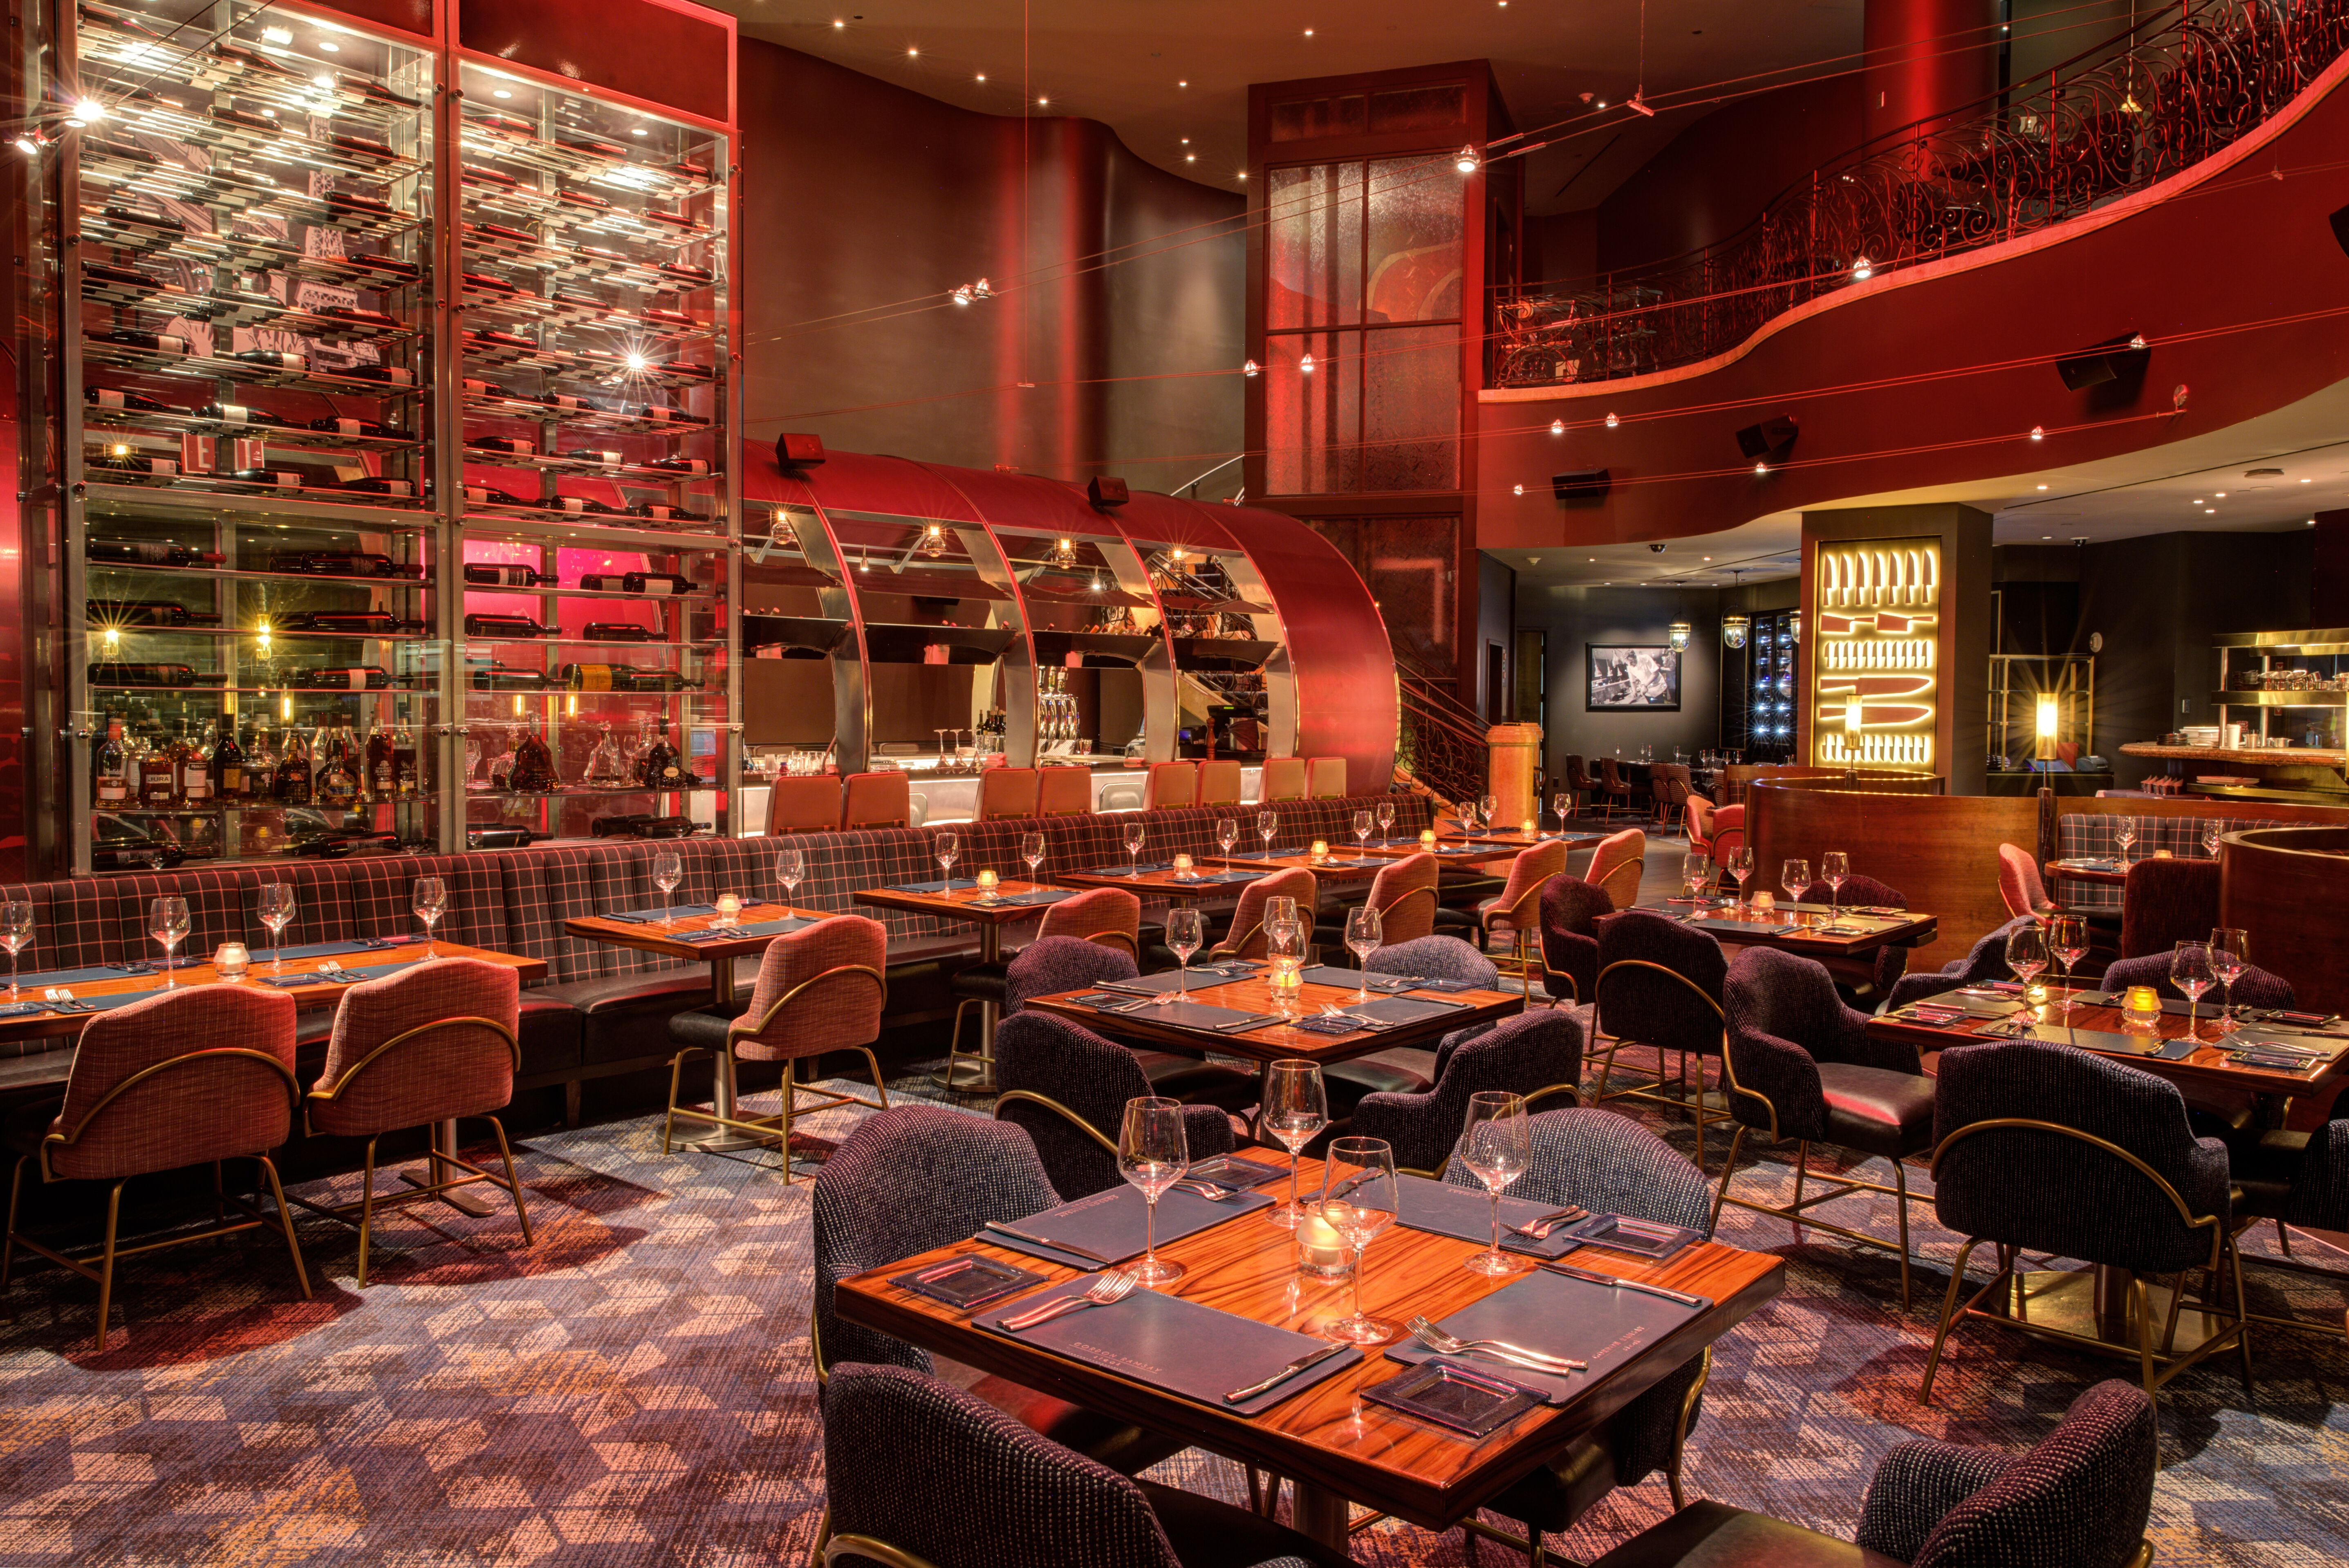 Gordon Ramsay Steak Las Vegas